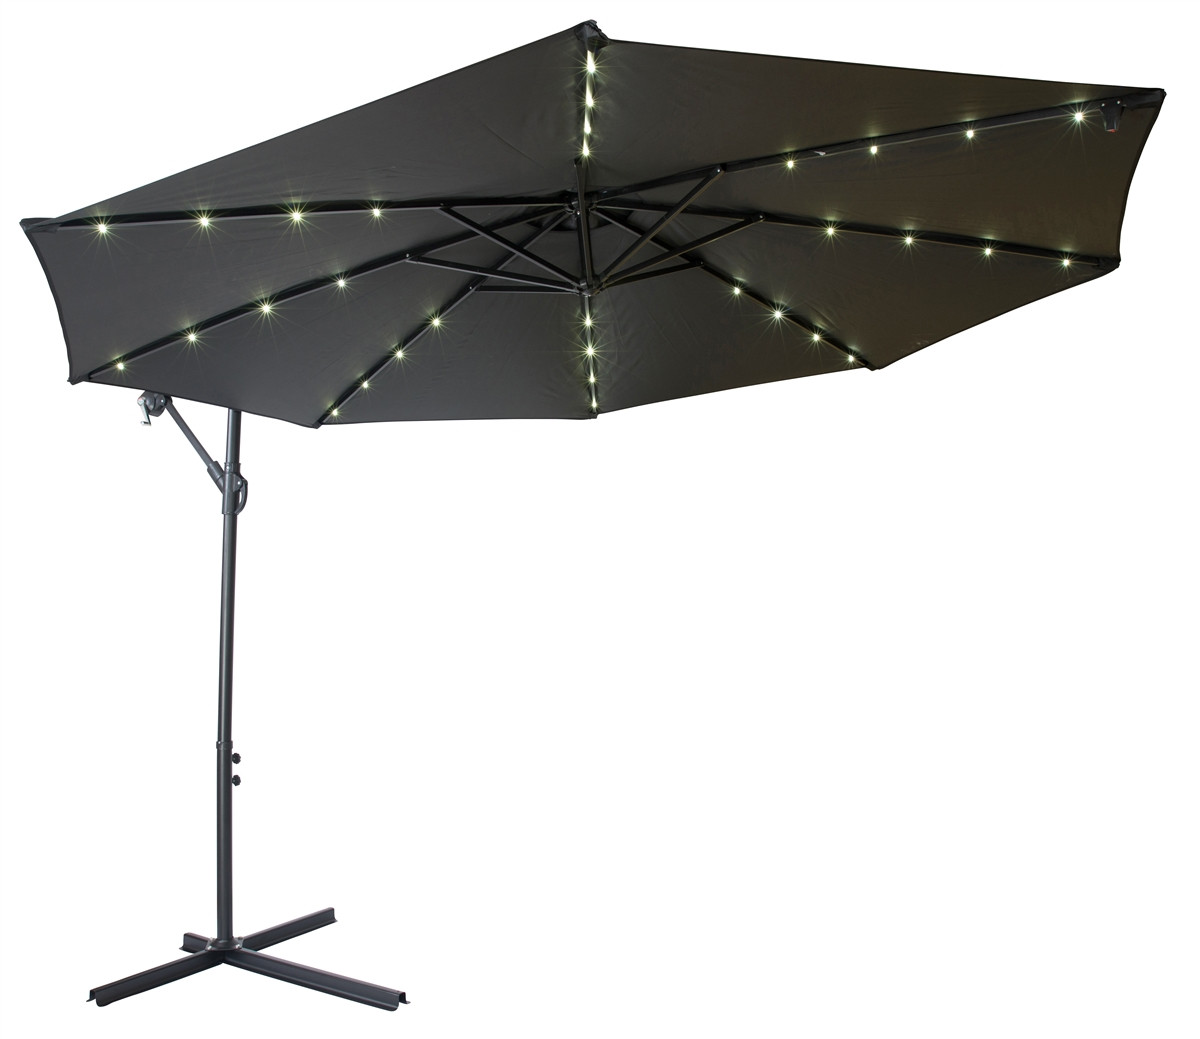 Best ideas about Patio Umbrella Walmart . Save or Pin Tips & Ideas Best Choice Accessories Umbrella Base Now.